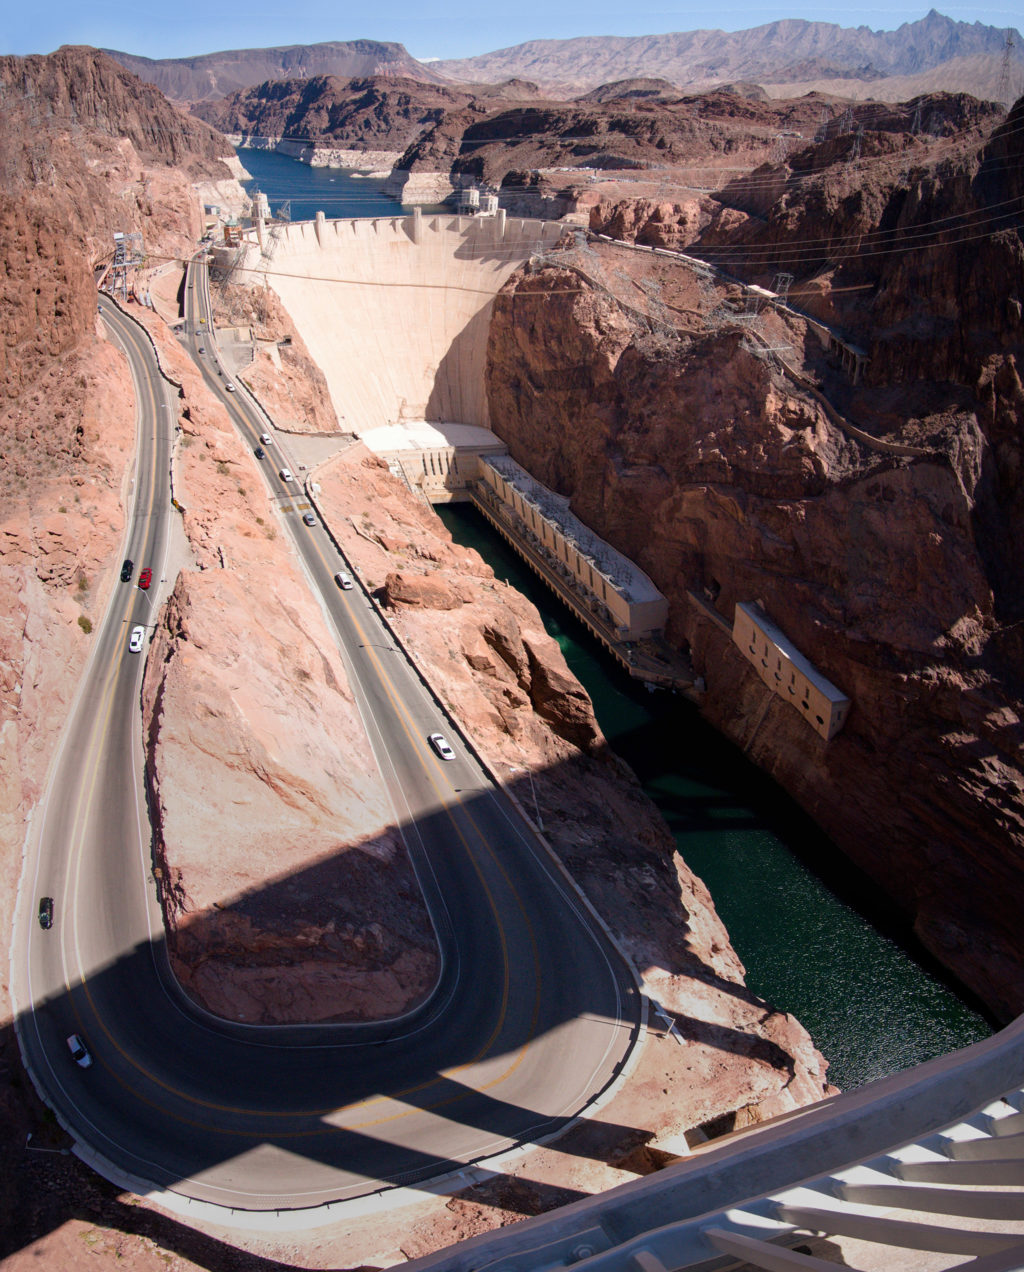 Hoover Dam and the long looped road going towards it